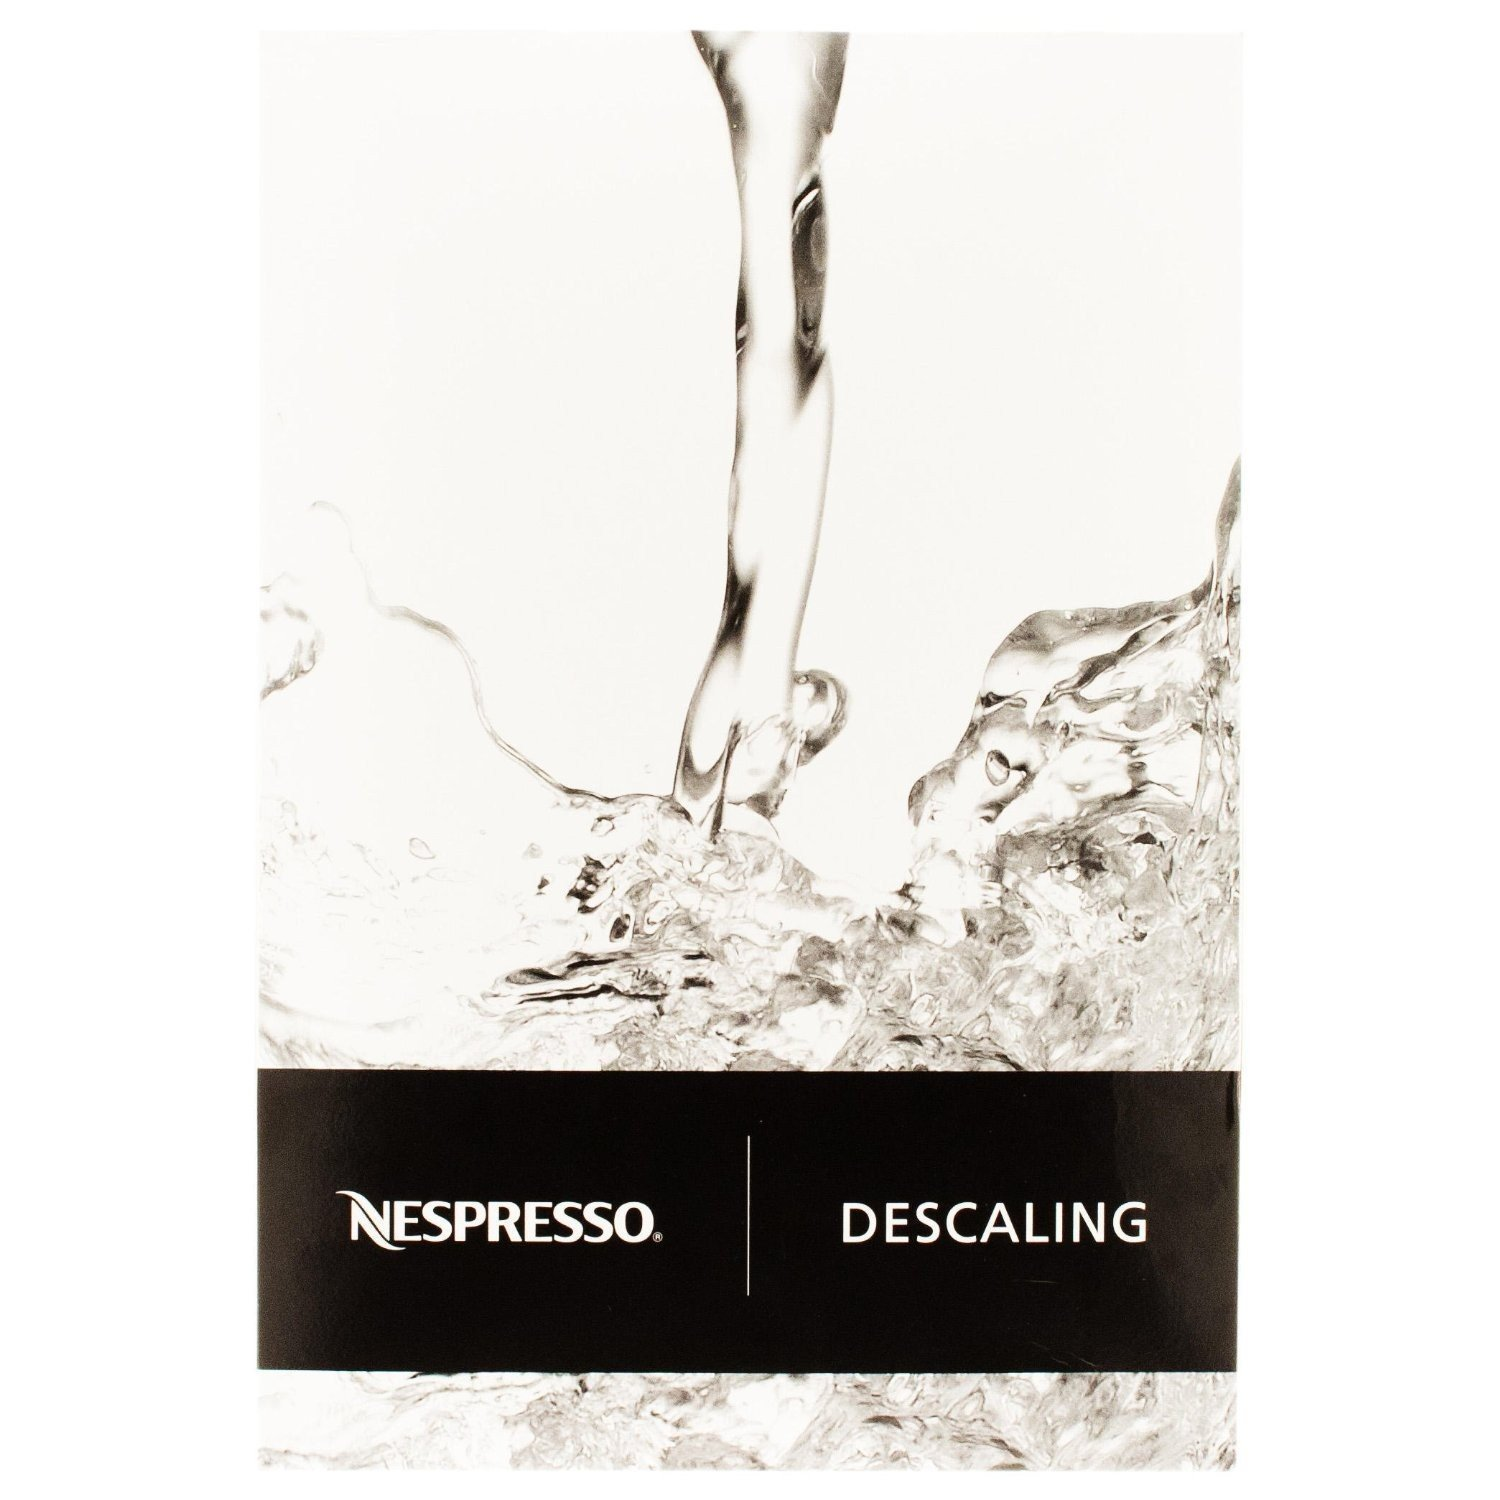 Nespresso Descaling Solution, Fits all Models pUANqz, 10 Packets by Nespresso (Image #1)